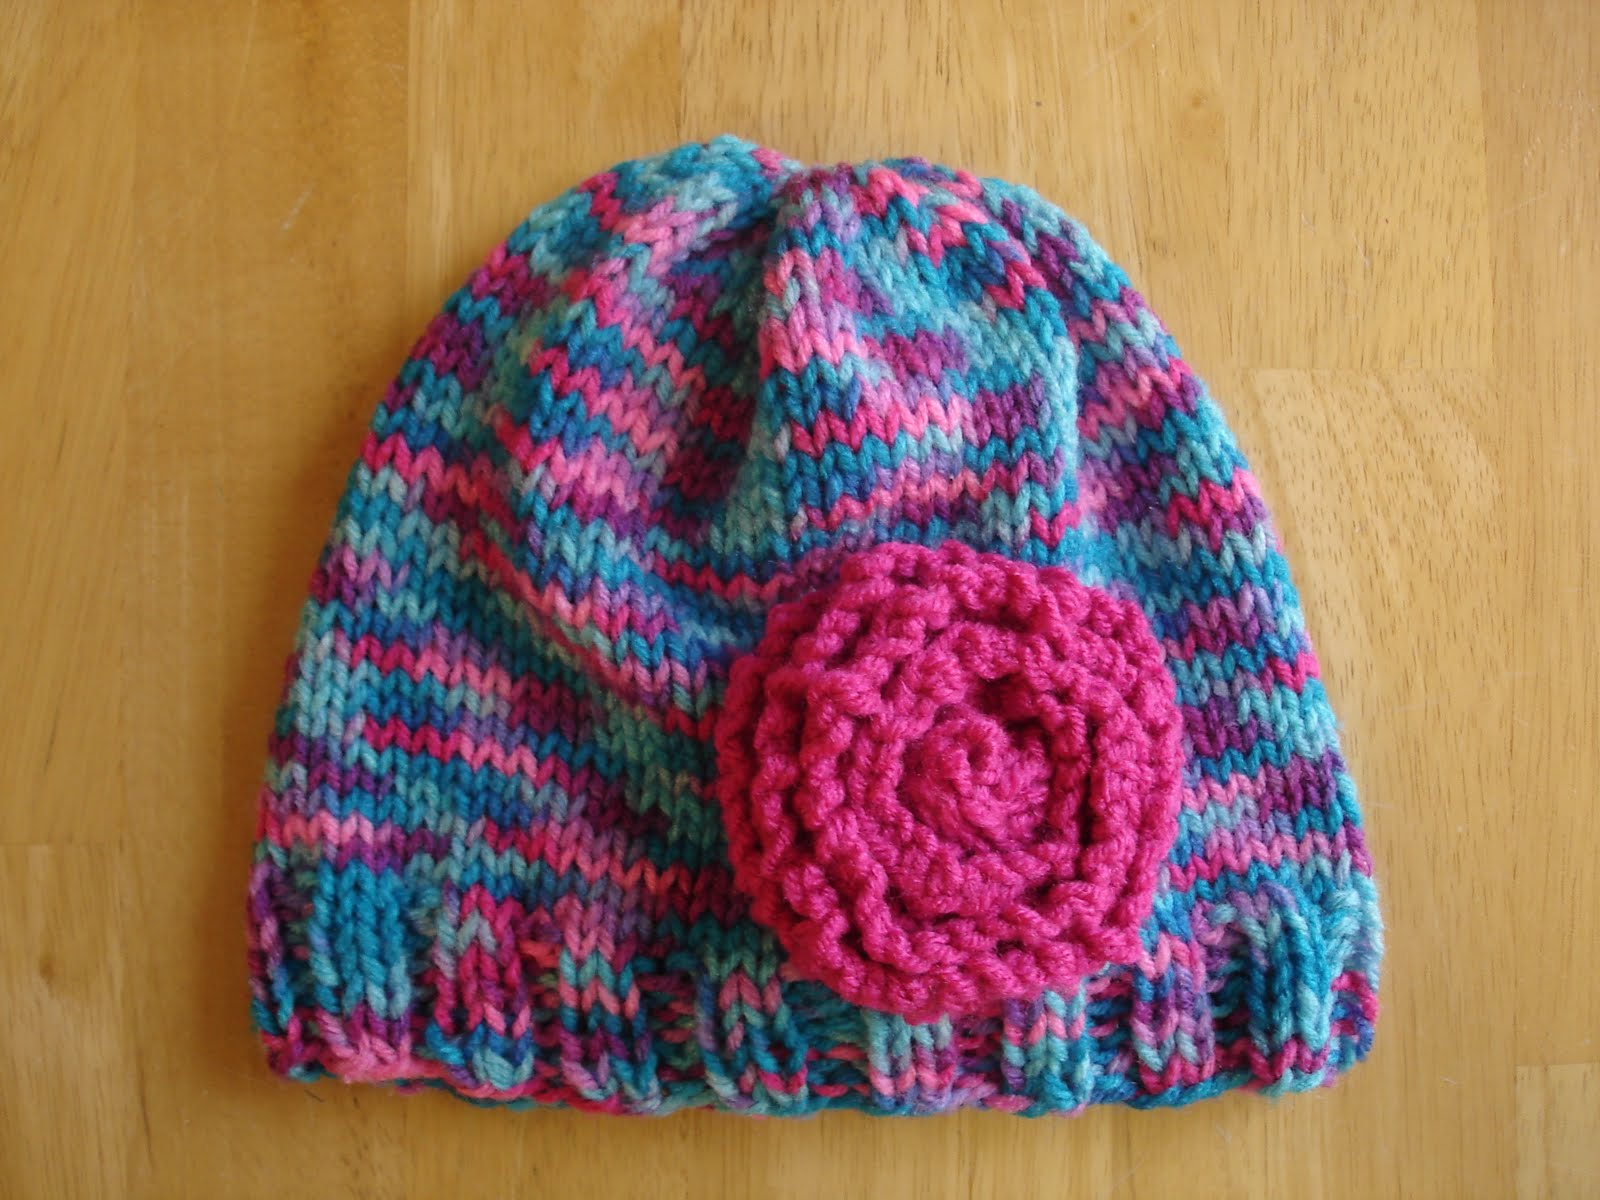 Knitting Hat Free Pattern : Fiber Flux: Free Knitting Pattern...Very Violet Newborn Hat!